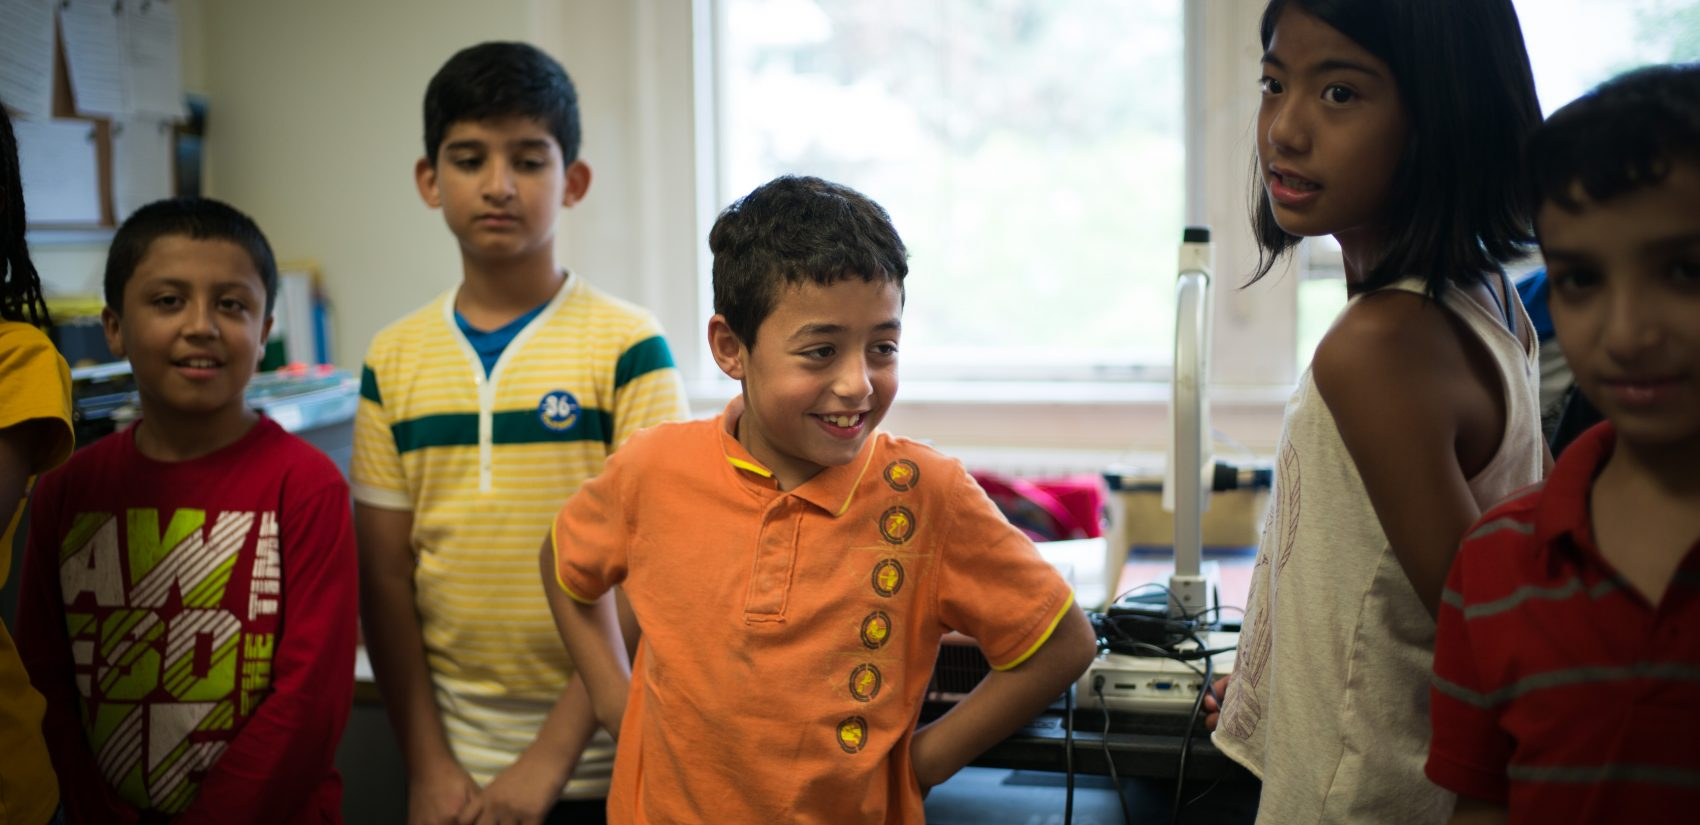 Taki Alaid (center), a student at Rose Avenue Public School, in Toronto, Ontario, Canada. (Ian Willms/For Keystone Crossroads)